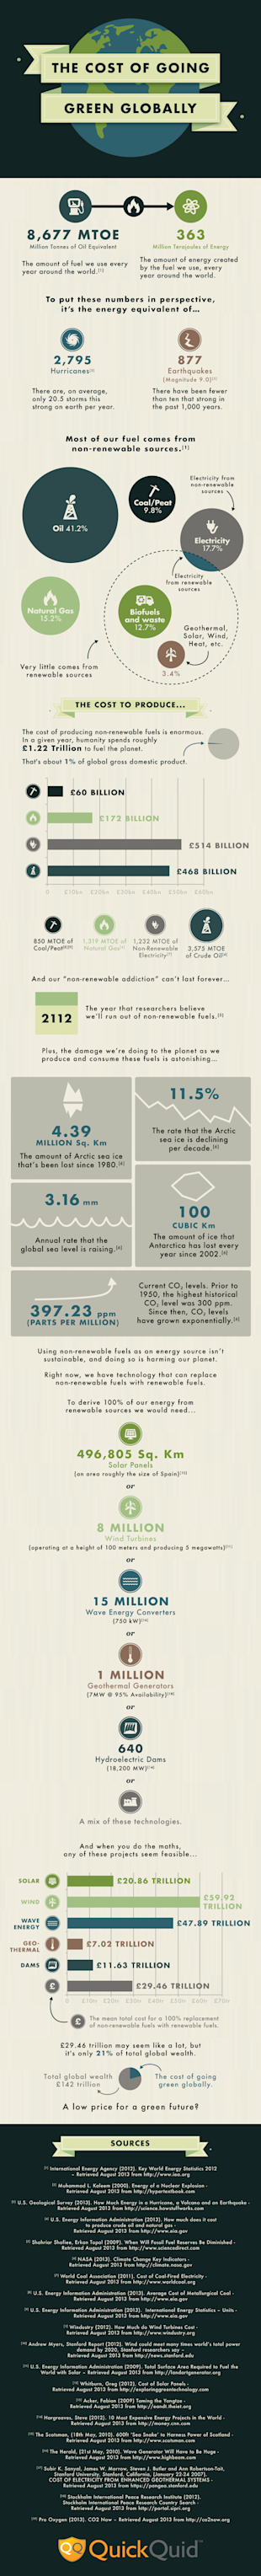 The Cost of Going Green Globally Infographic image the cost of going green globally